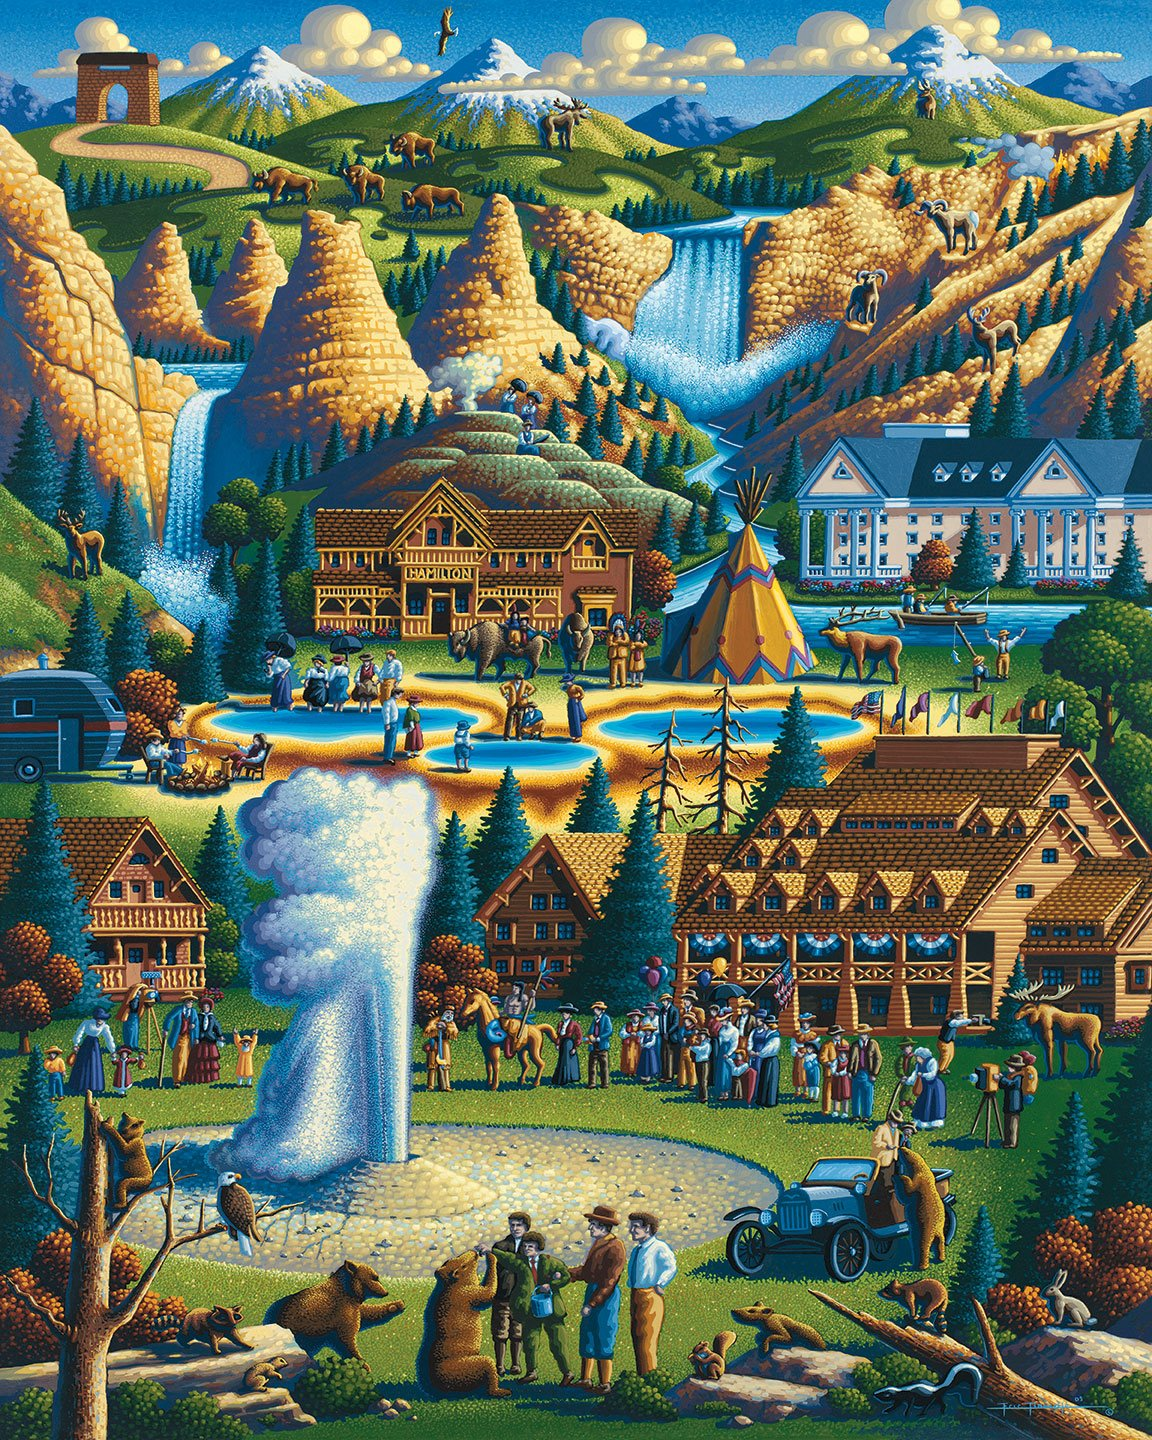 yellowstone-national-park-500pc-puzzle-image-2